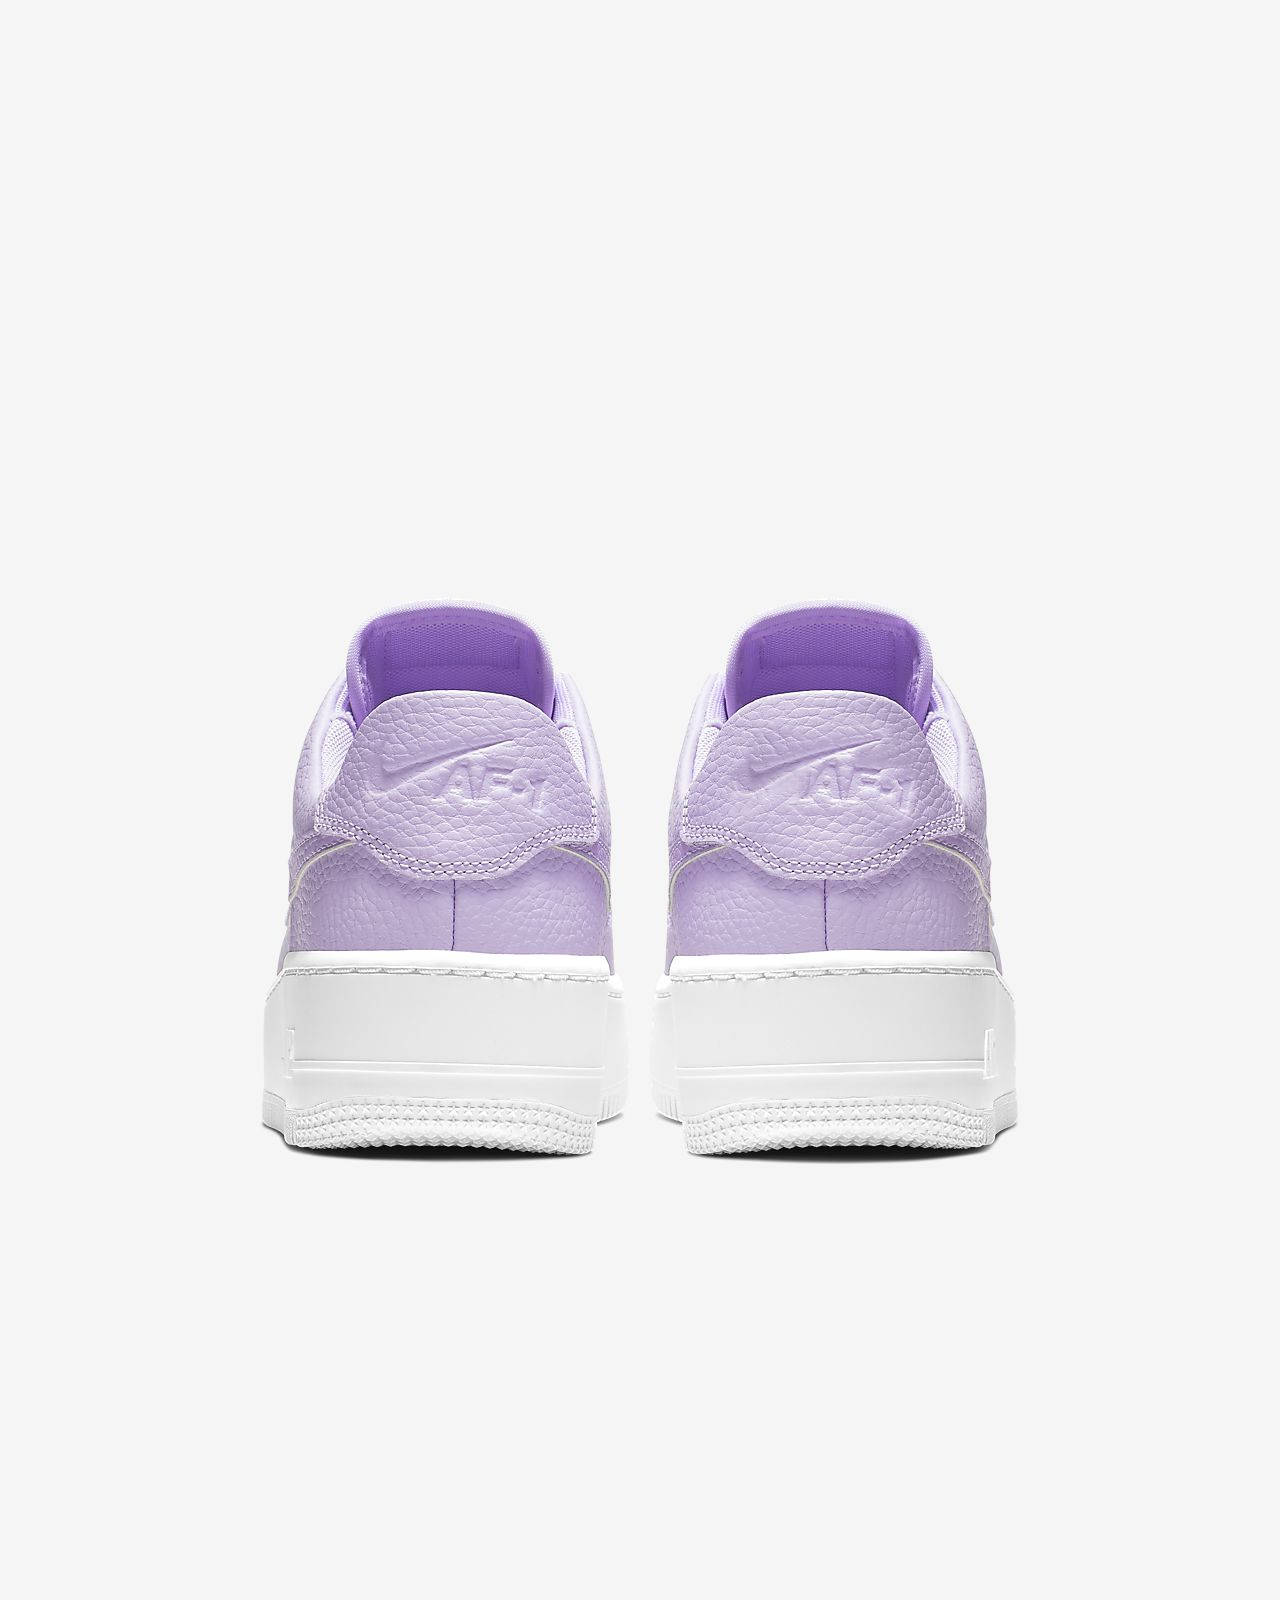 8f40bc931d4 Chaussure Nike Air Force 1 Sage Low pour Femme. Nike.com FR